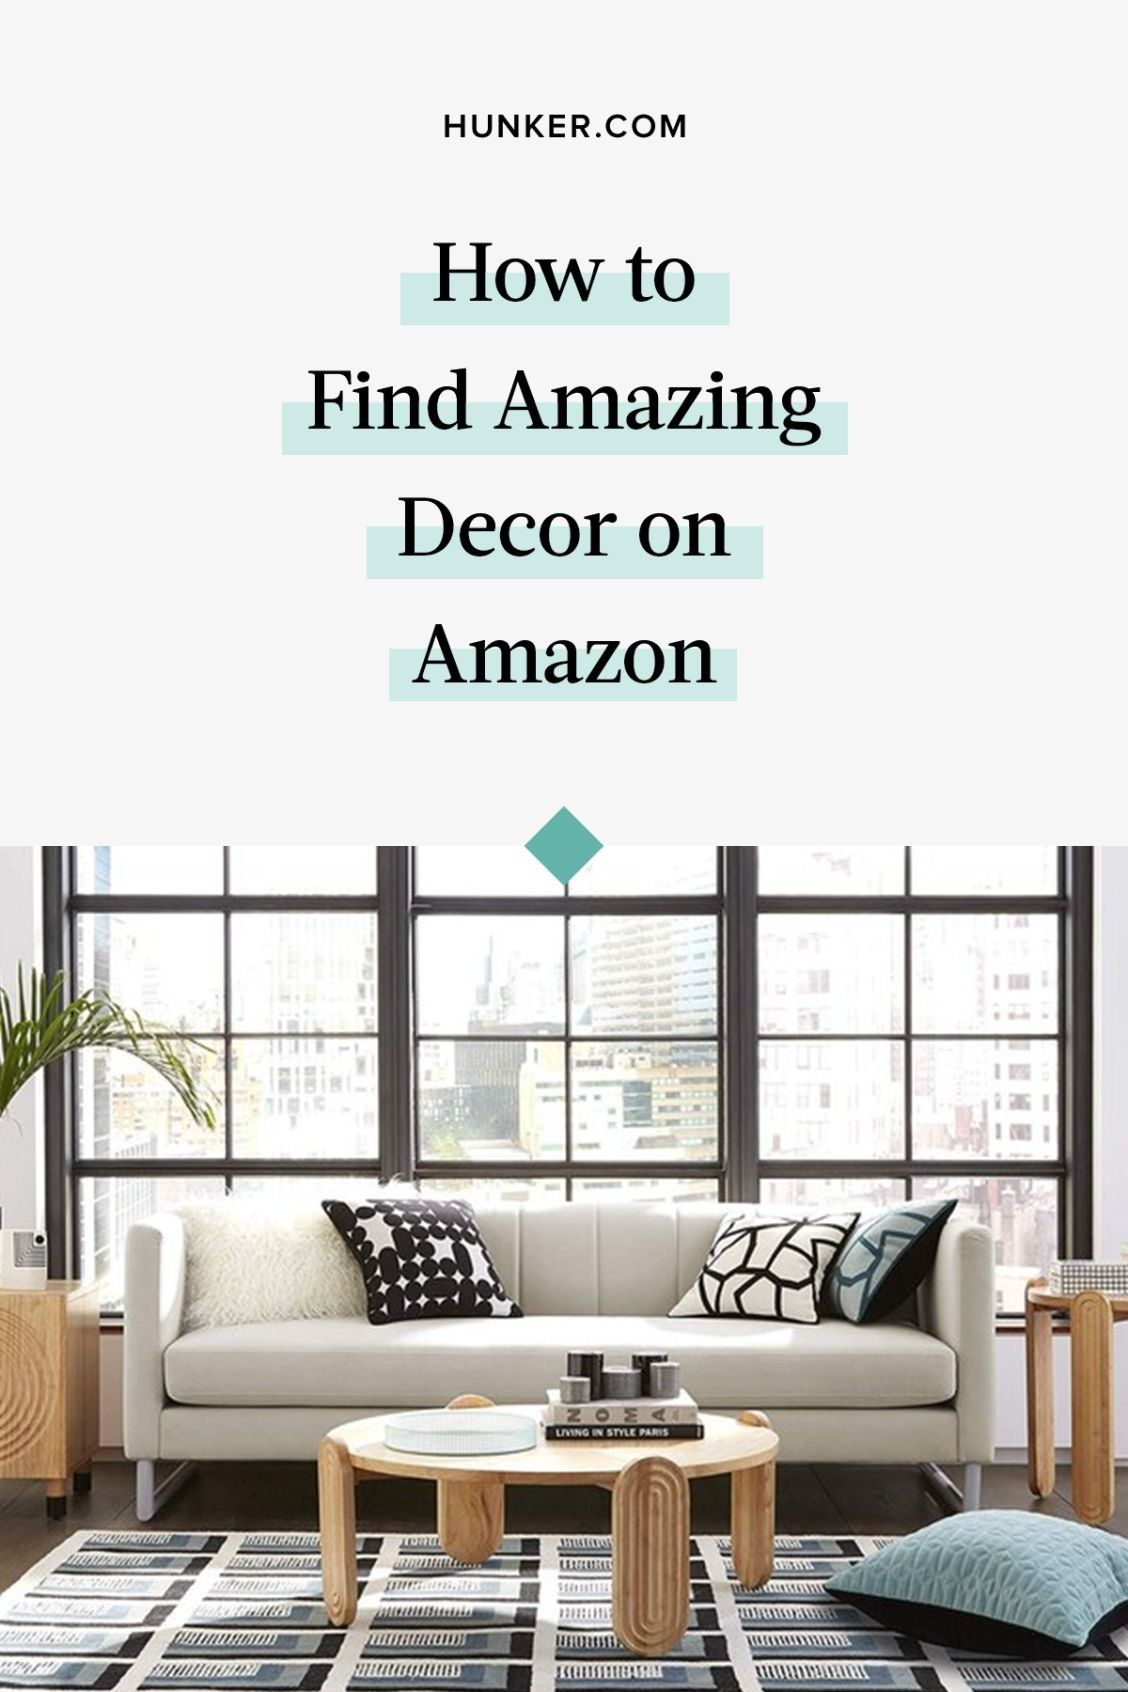 Smart tips for shopping on Amazon for home goods, from gift guides to style resources and Amazon's Scout and Assistant features. #hunkerhome #amazon #amazondeals #amazondecor #decordeals